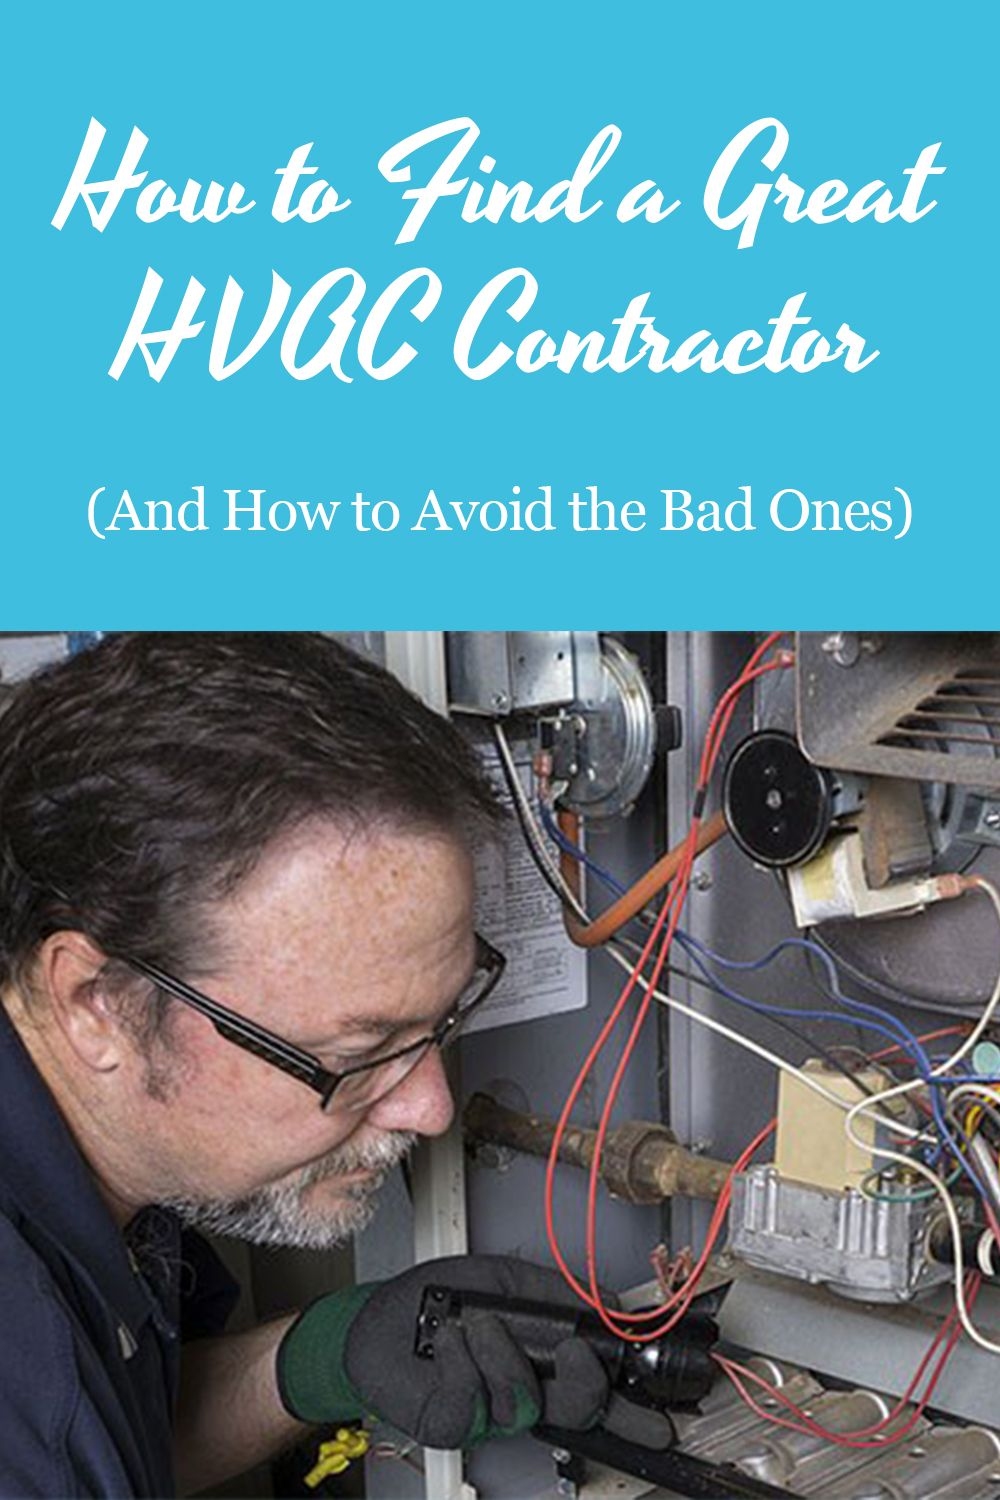 Wondering how to find a great HVAC contractor? We break it